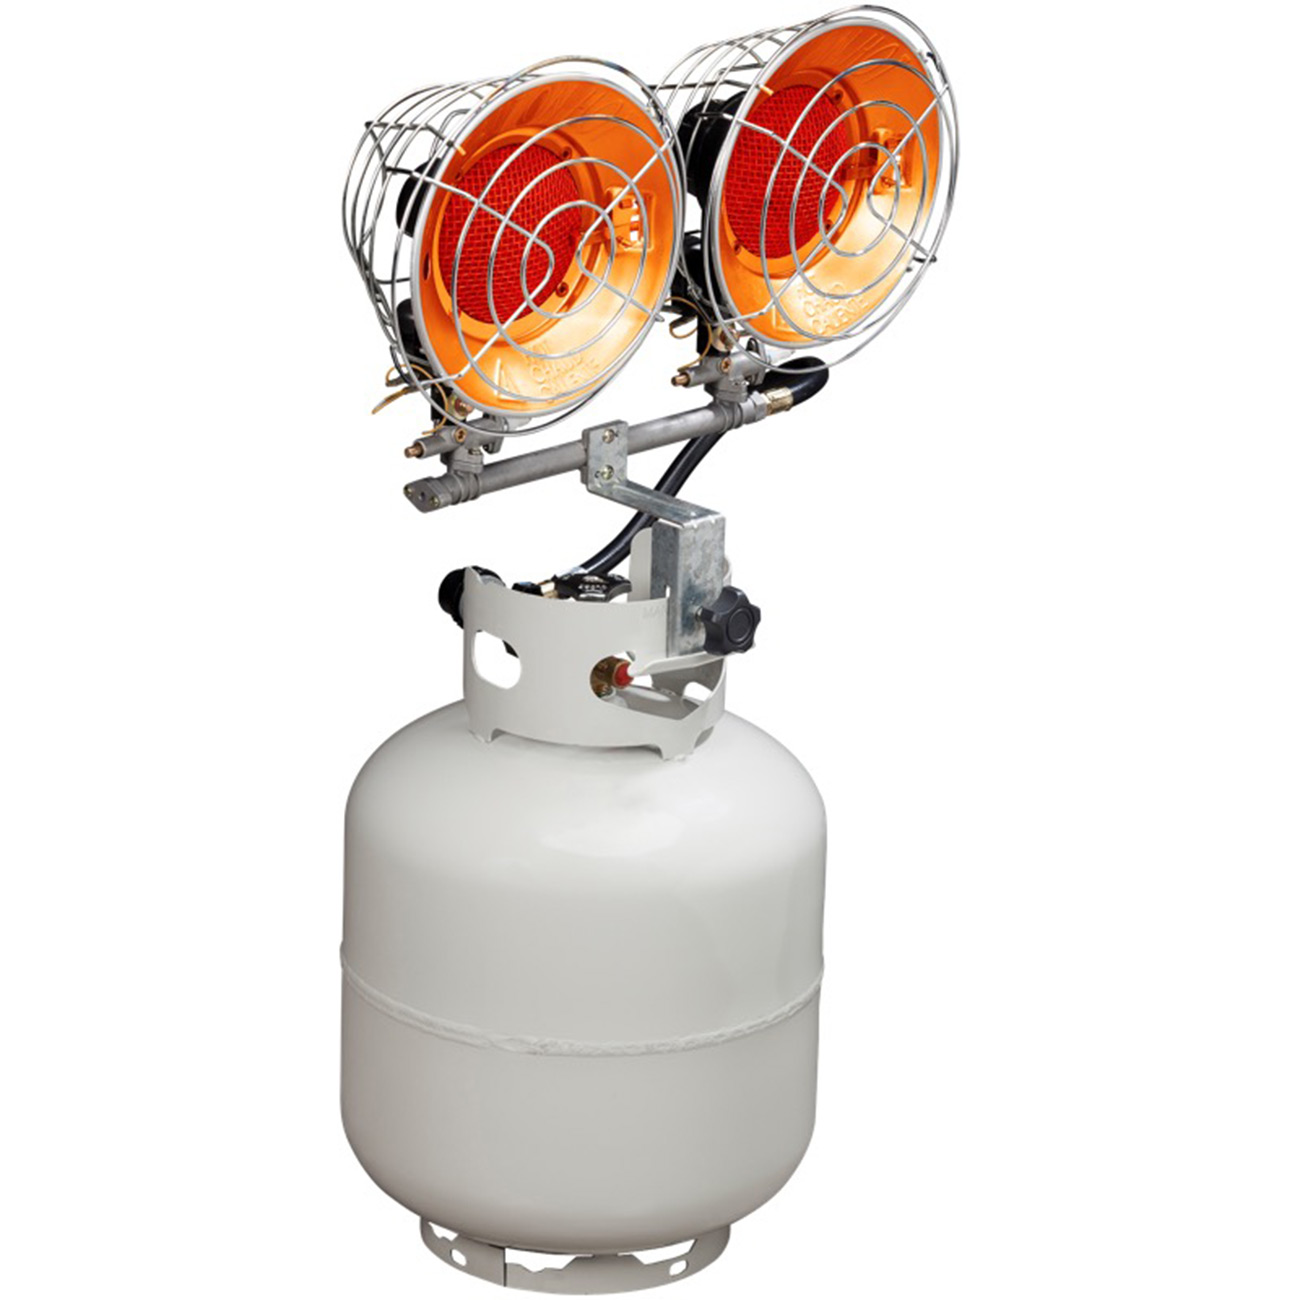 Tank Top Propane Heater - 30,000 BTU - ProCom Heating